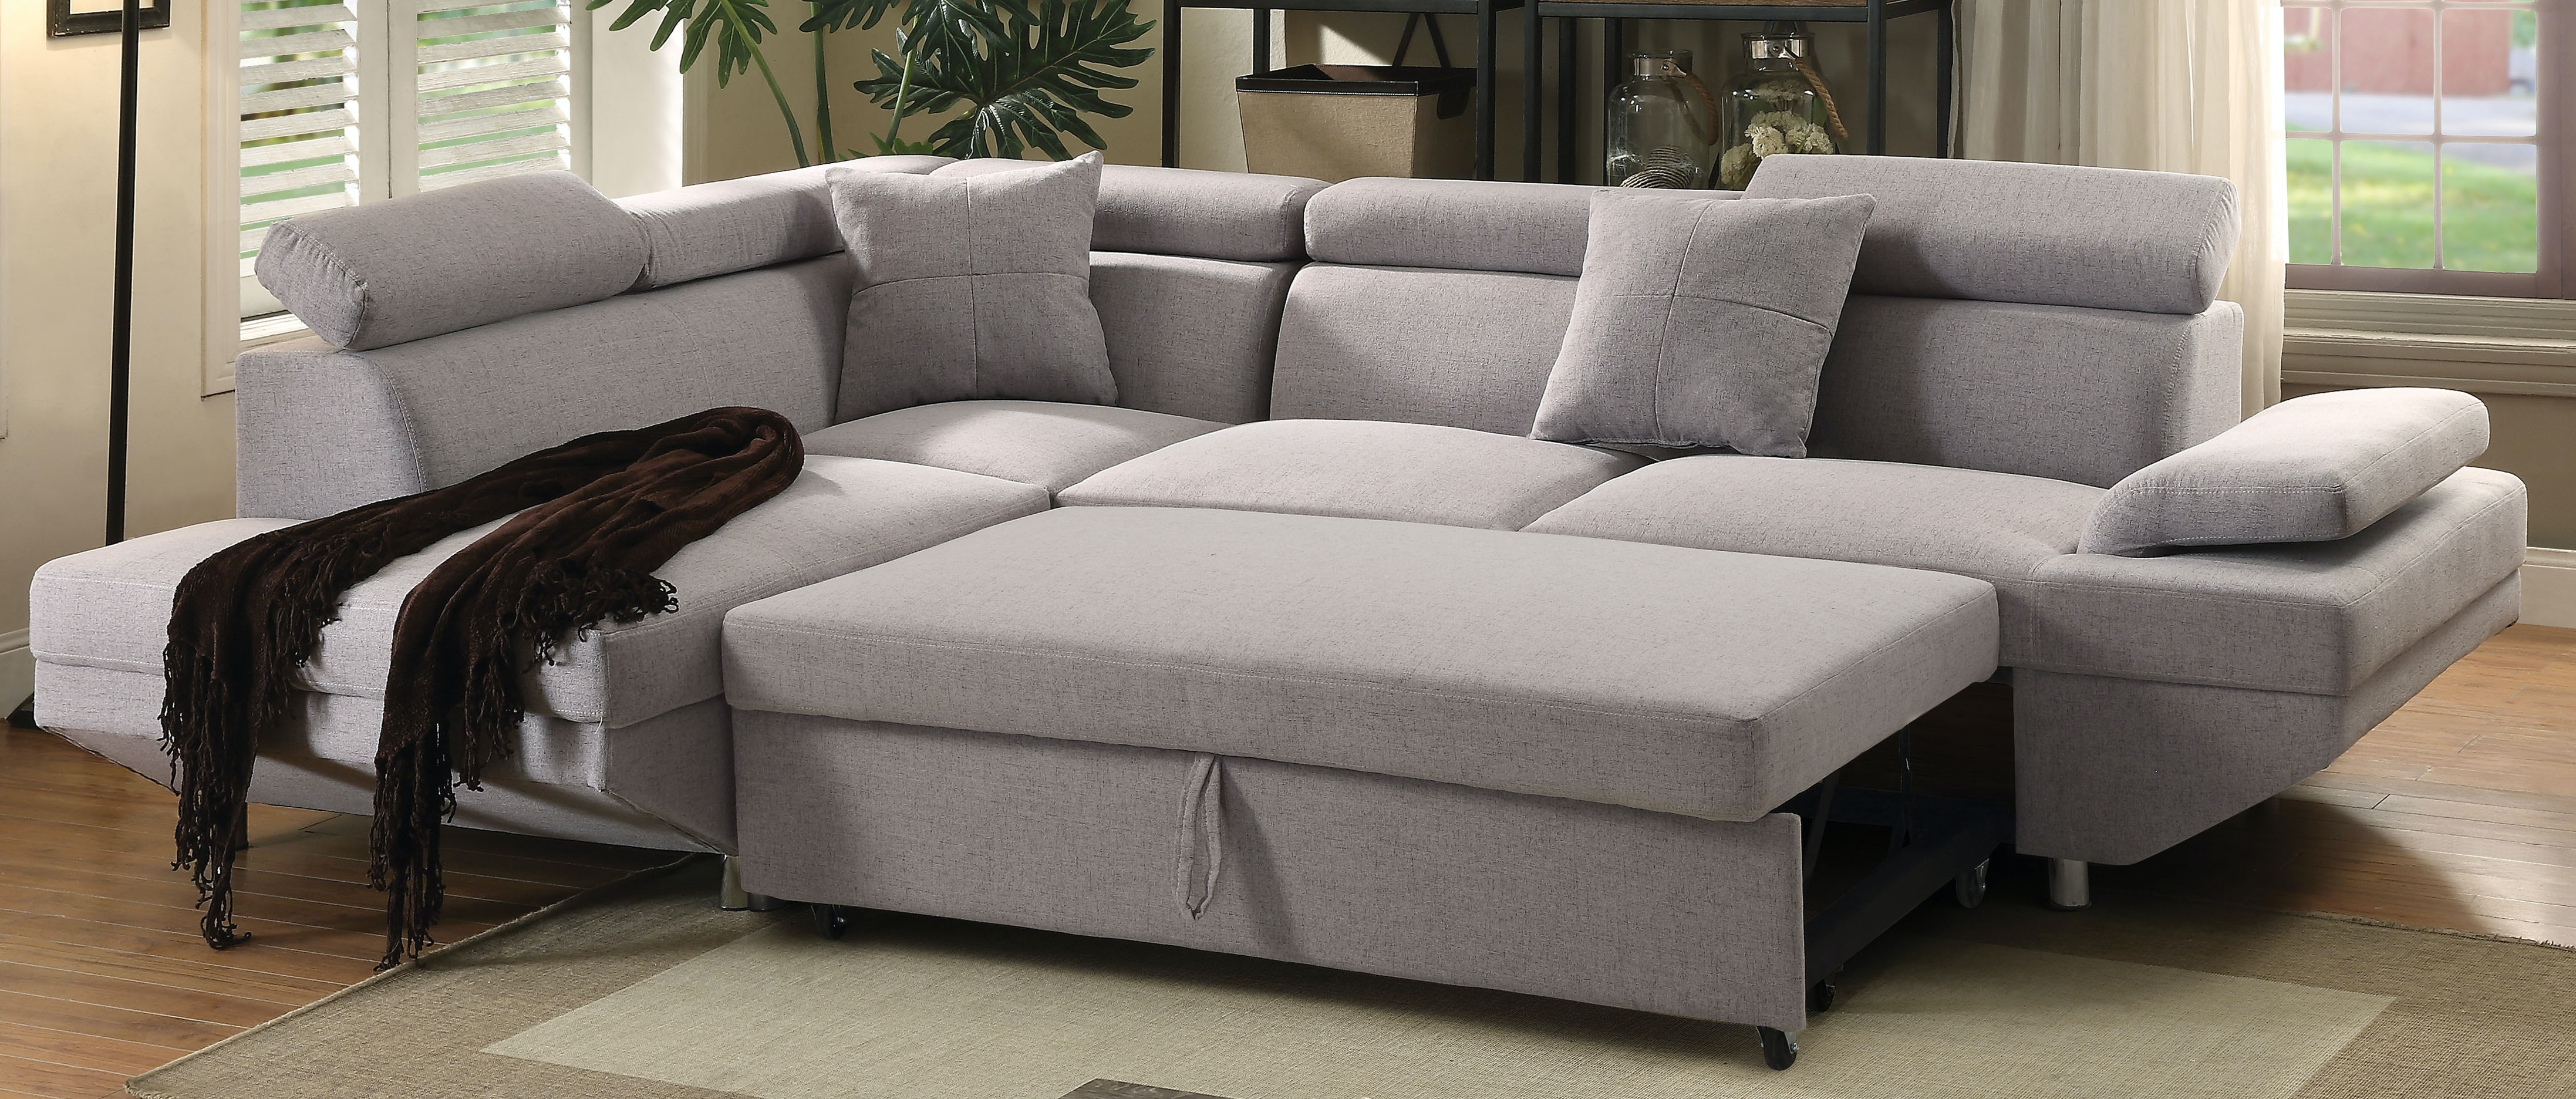 Acme Furniture Living Room Jemima Sectional Sofa with Sleeper